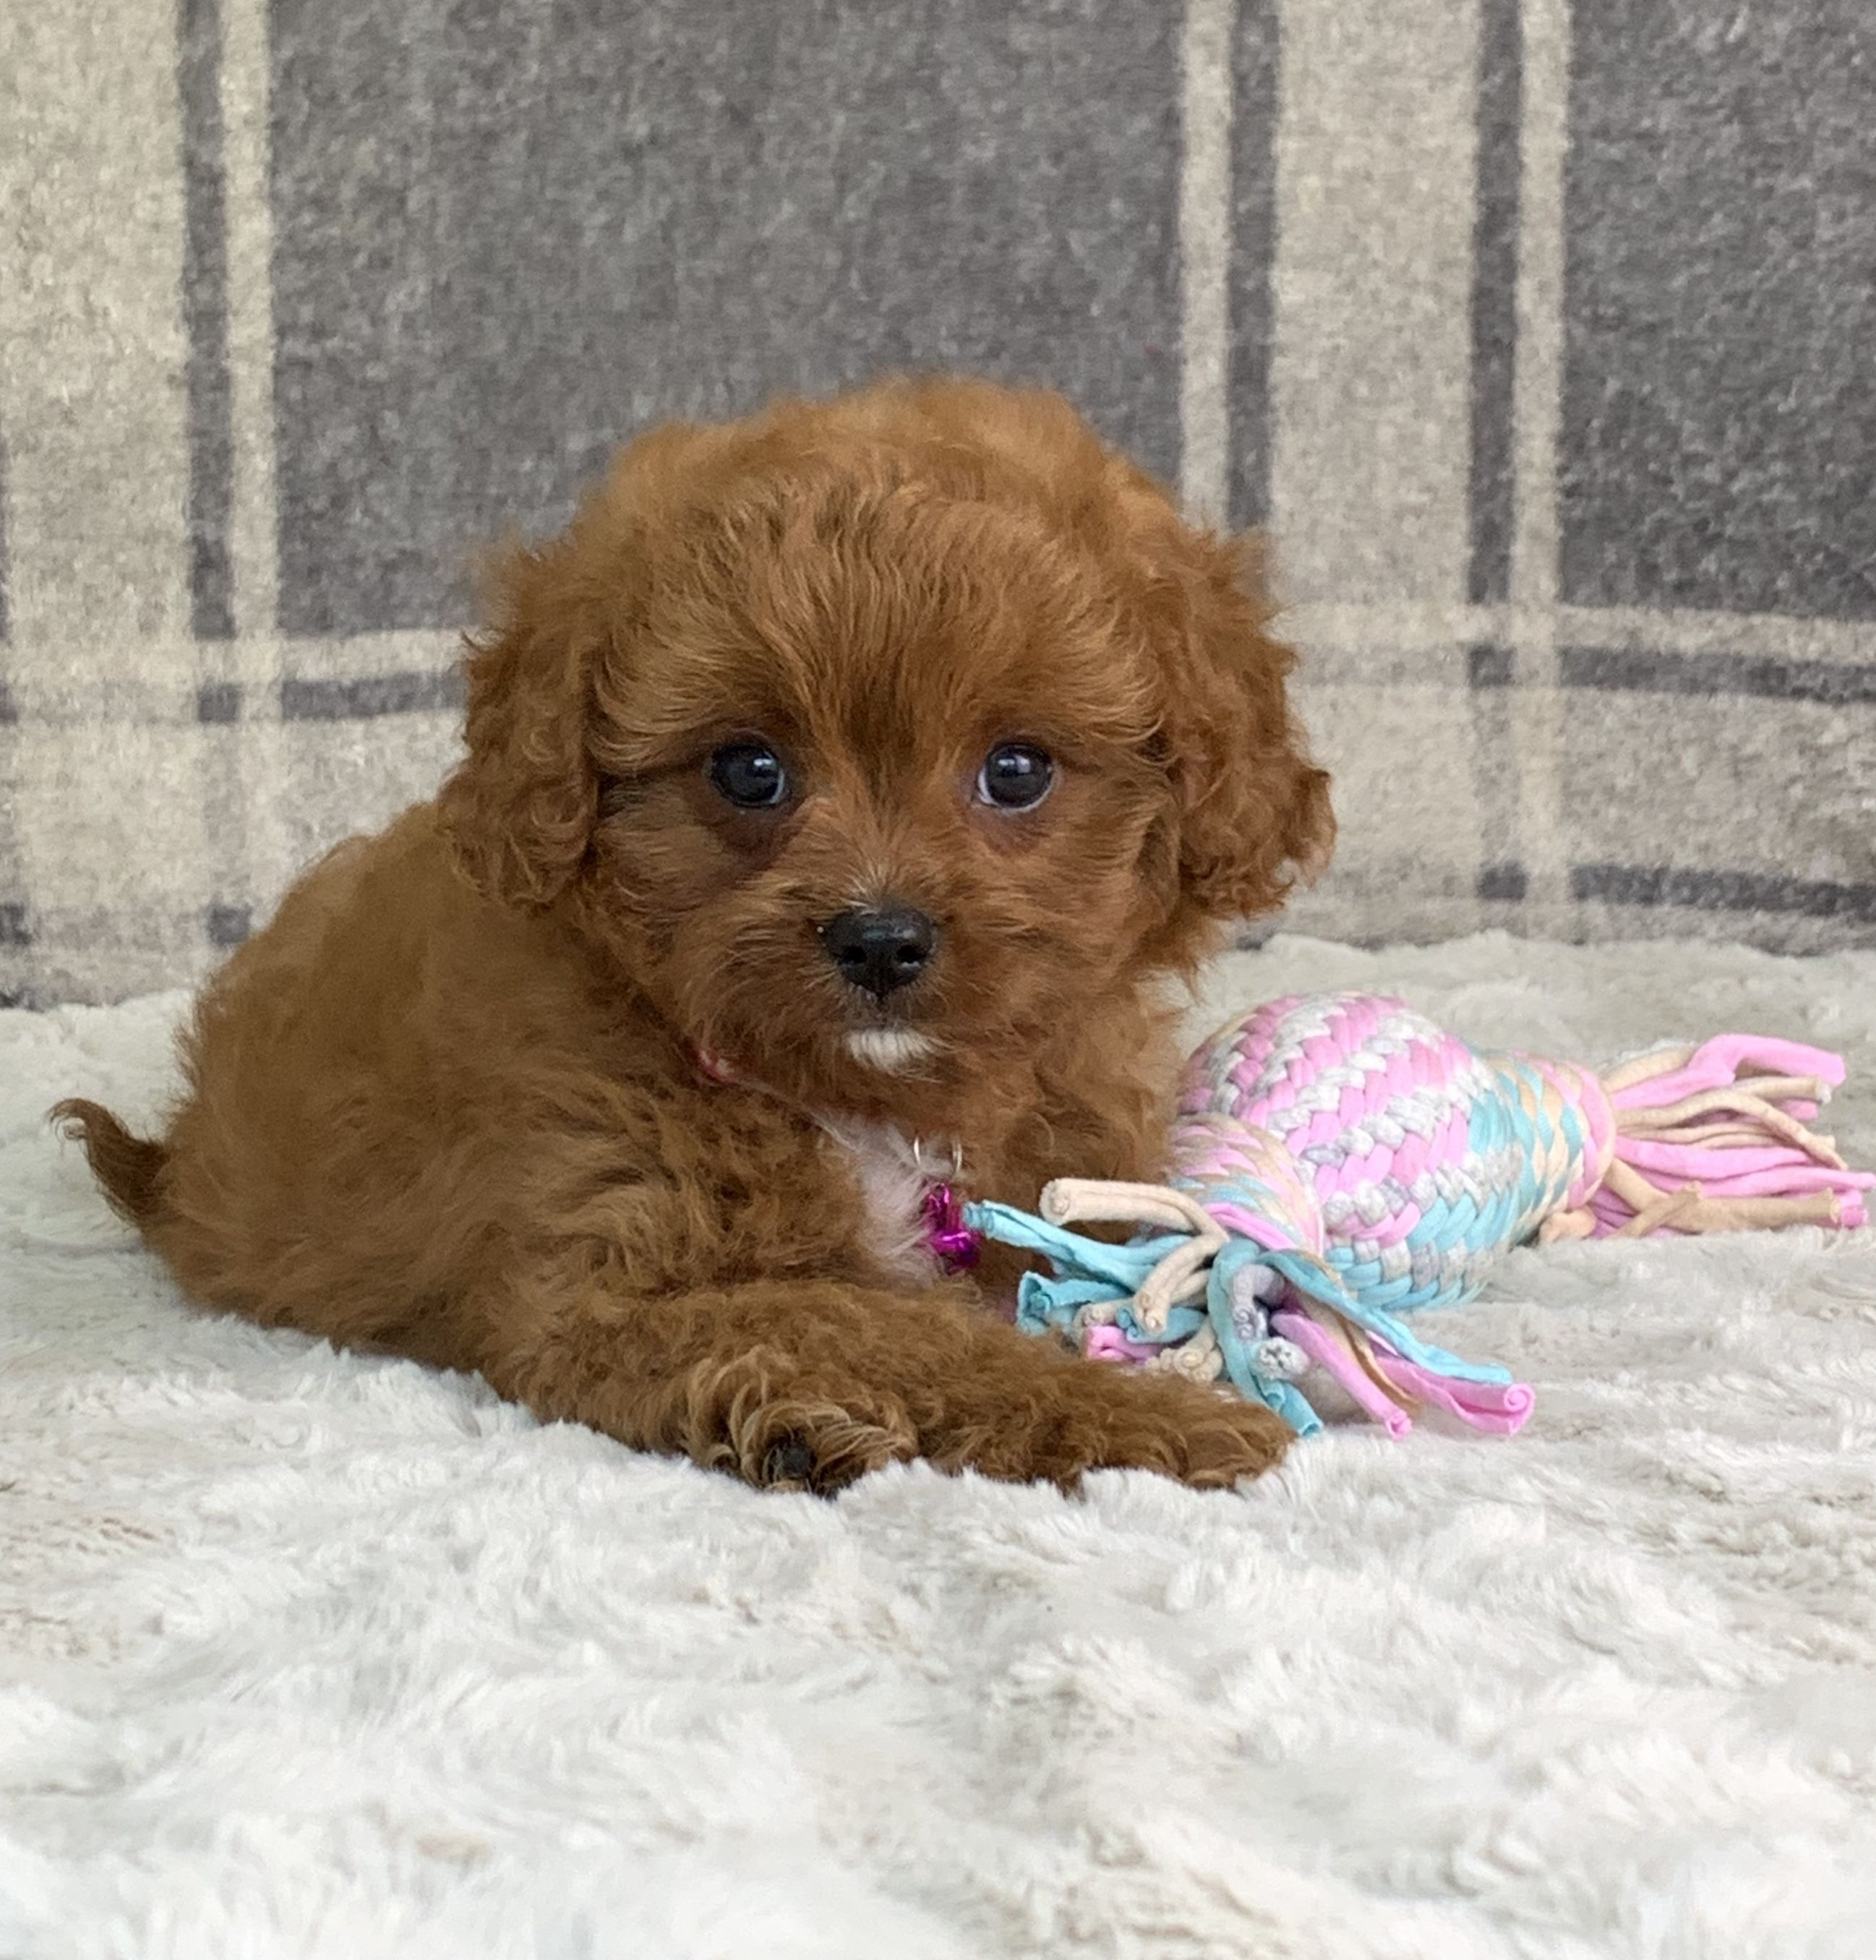 Protective Cavapoo Cavapoo Puppies Puppy Adoption Dog Breeder